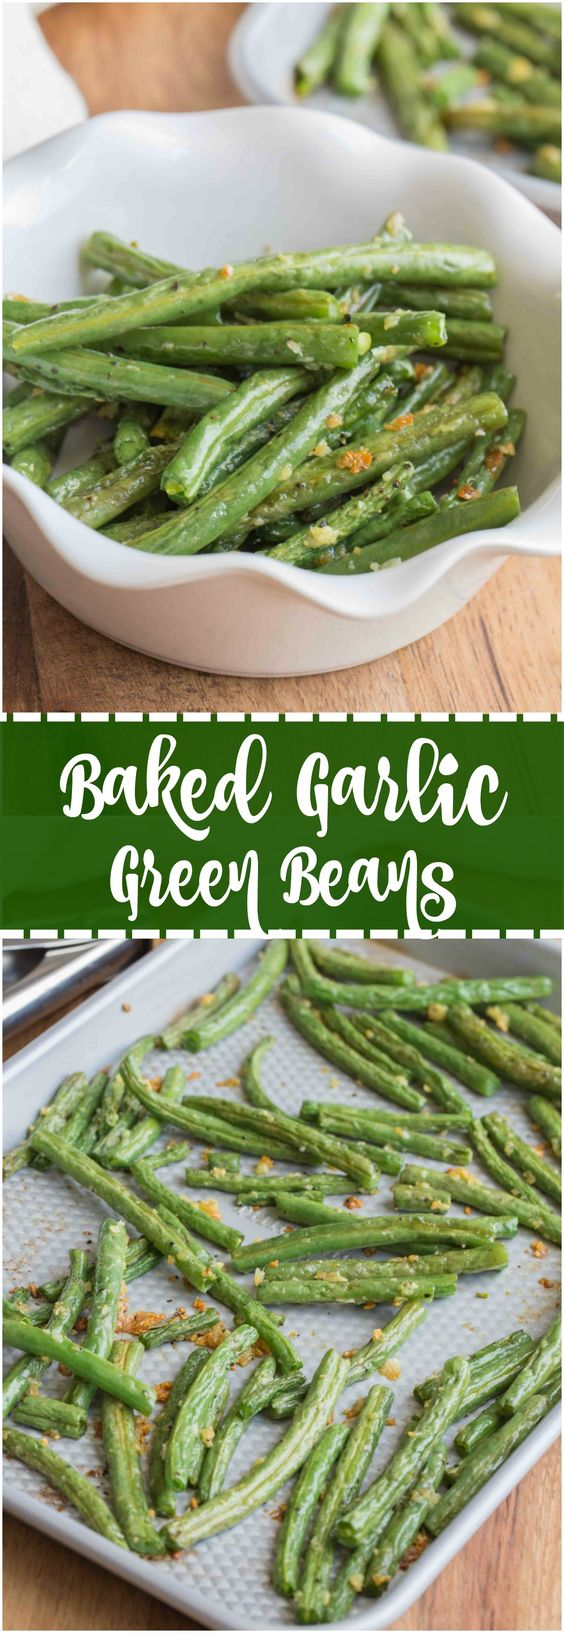 Baked Garlic Green Beans are a simple and delicious side dish that ...